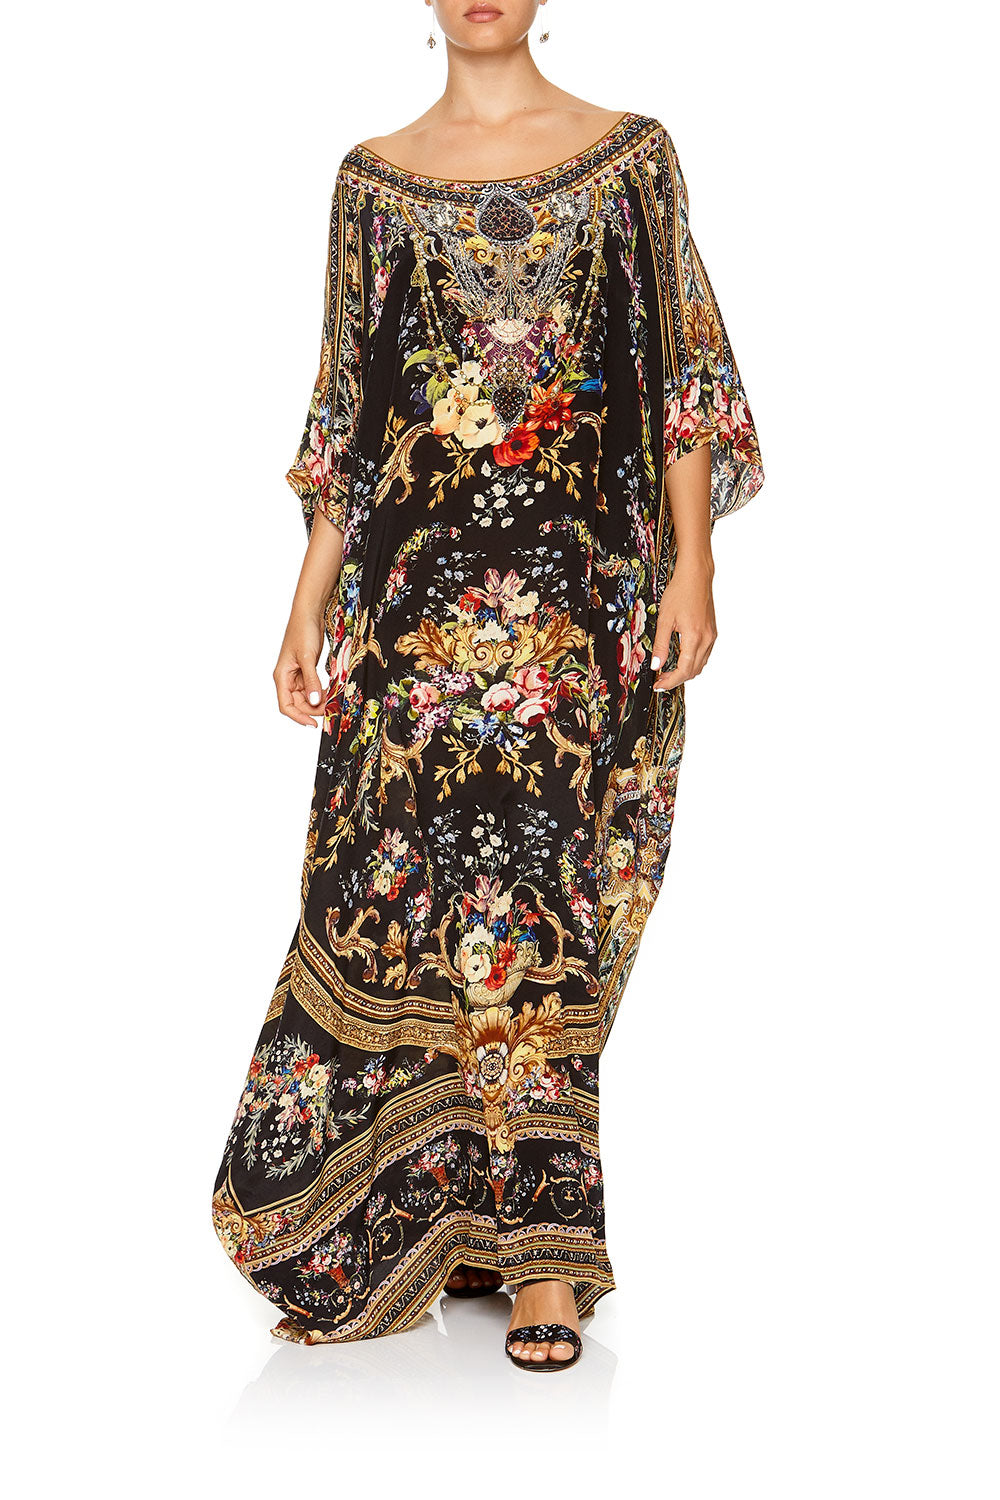 ab0b765cdaeab ROUND NECK KAFTAN FRIEND IN FLORA – CAMILLA